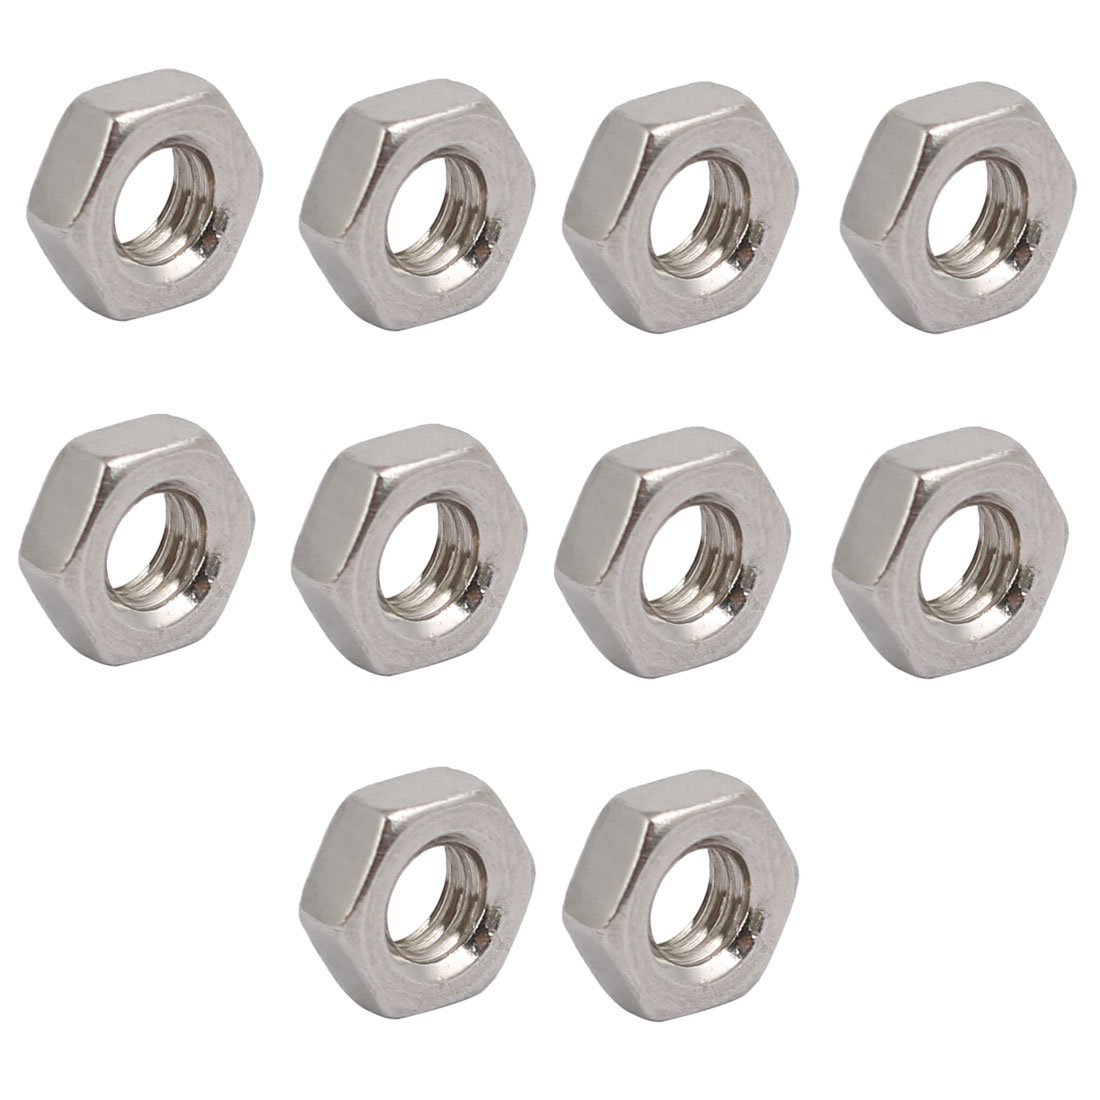 uxcell 10pcs M4 x 0.7mm Pitch Metric Thread 304 Stainless Steel Left Hand Hex Nuts